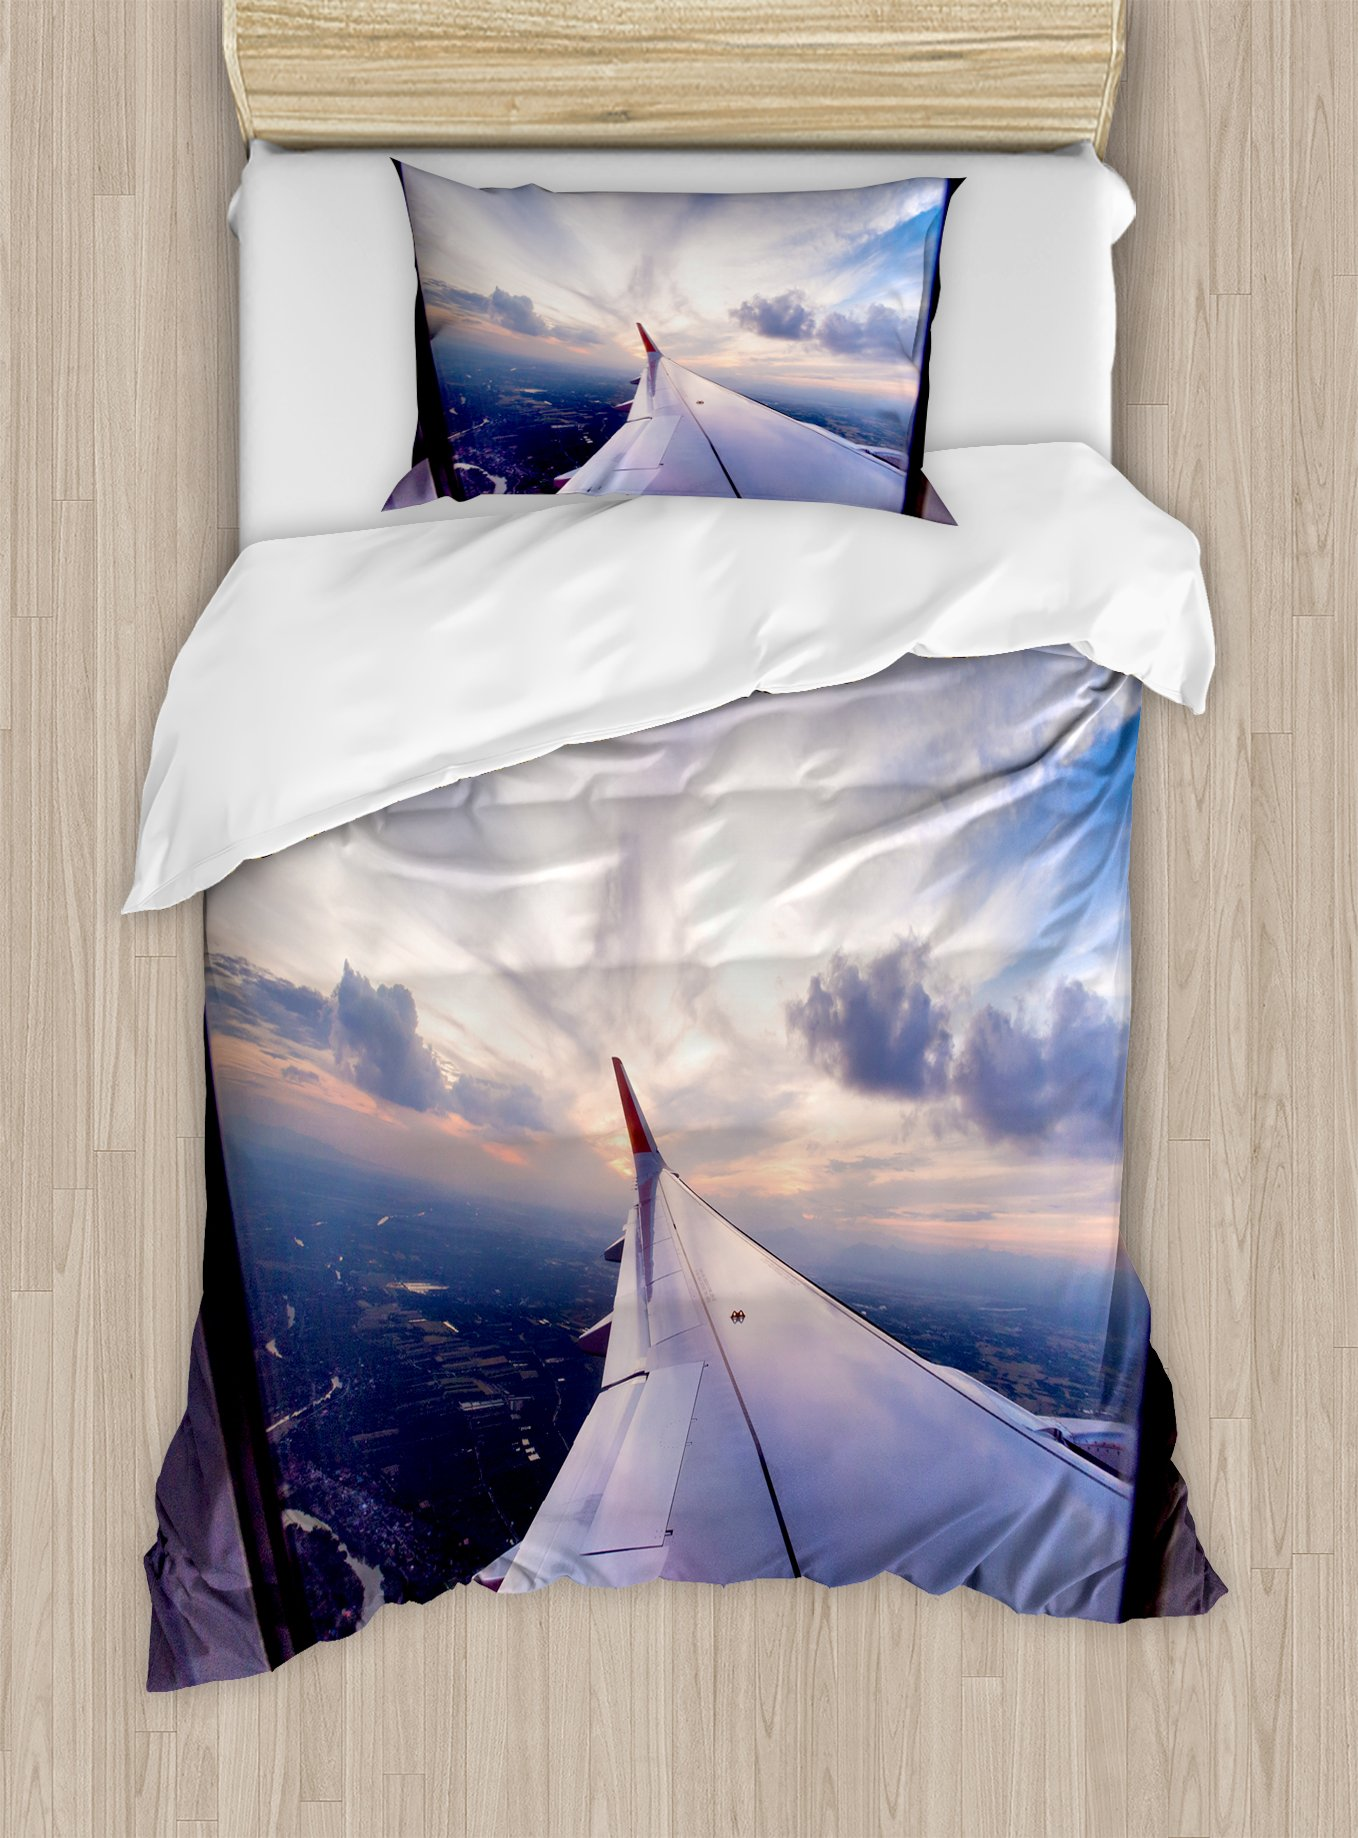 Airplane Decor Duvet Cover Set by Ambesonne, Airplane Travel Time is Sunset Business Distant Evening Float Holiday Horizon Journey Window, 2 Piece Bedding Set with 1 Pillow Sham, Twin / Twin XL Size